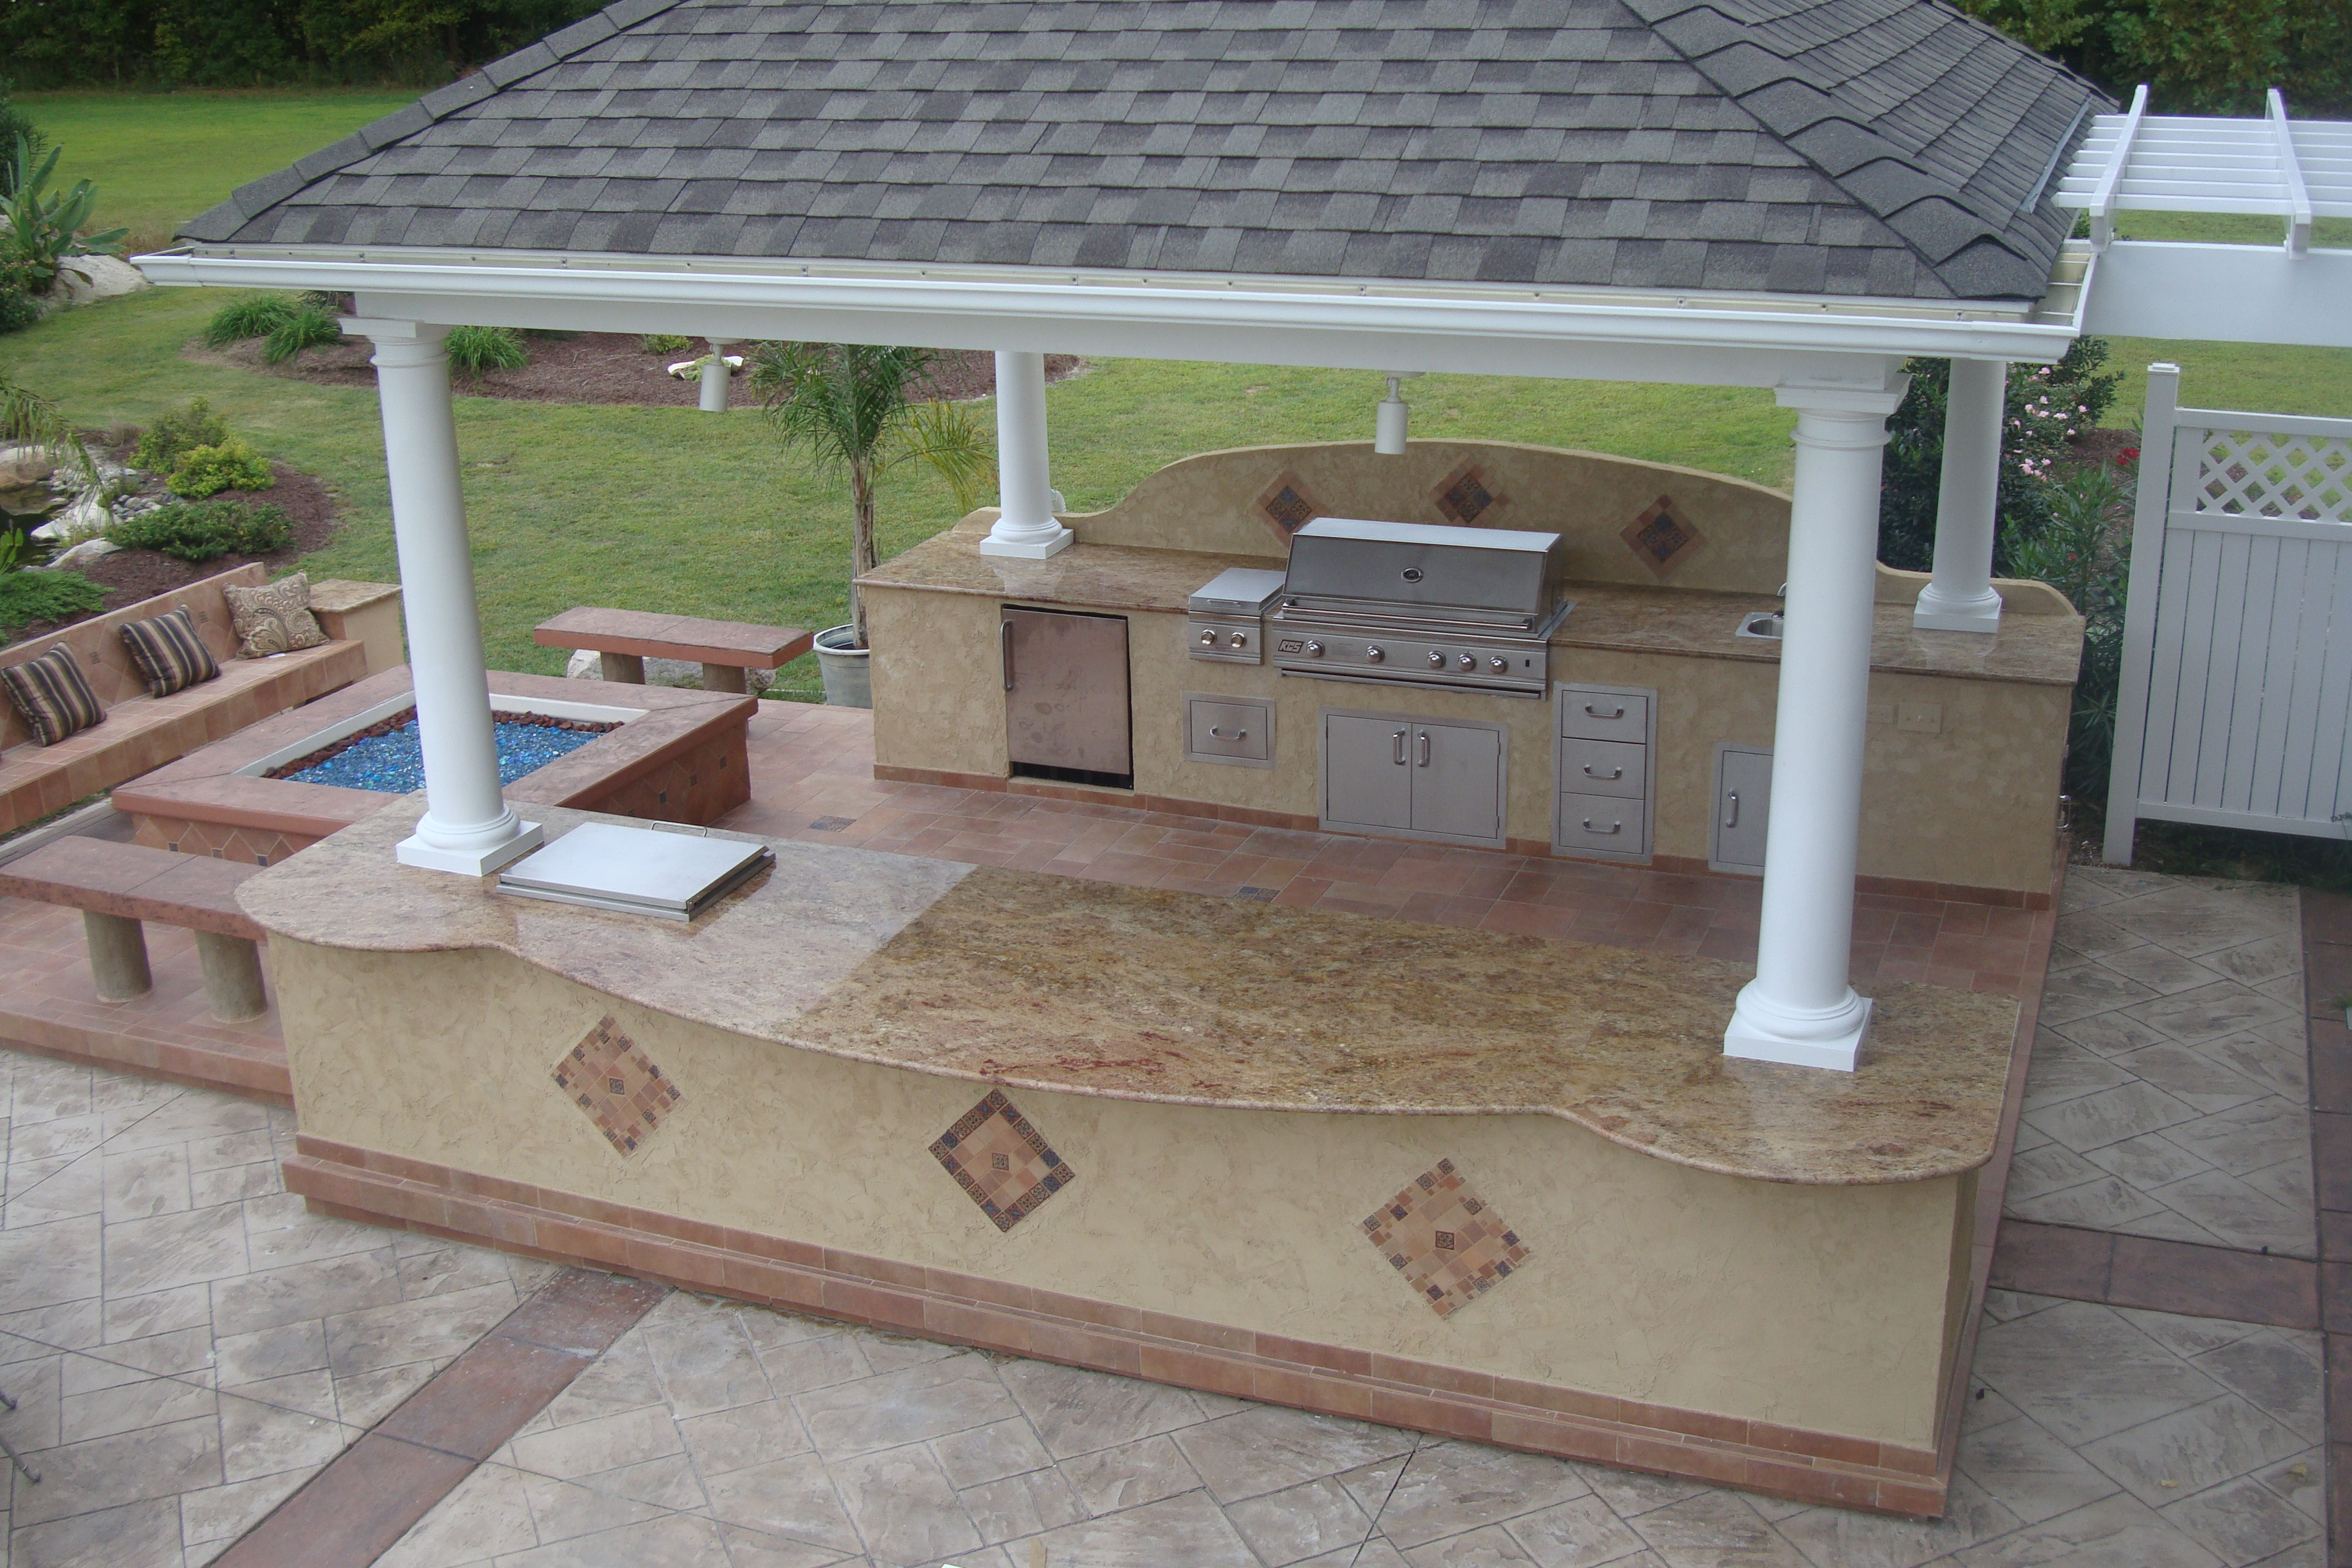 Ed Walker Used Bbq Coach Frame Kits To Build This Magnificent Outdoor Kitchen With Granite Counter Outdoor Kitchen Countertops Outdoor Bbq Kitchen Outdoor Bbq